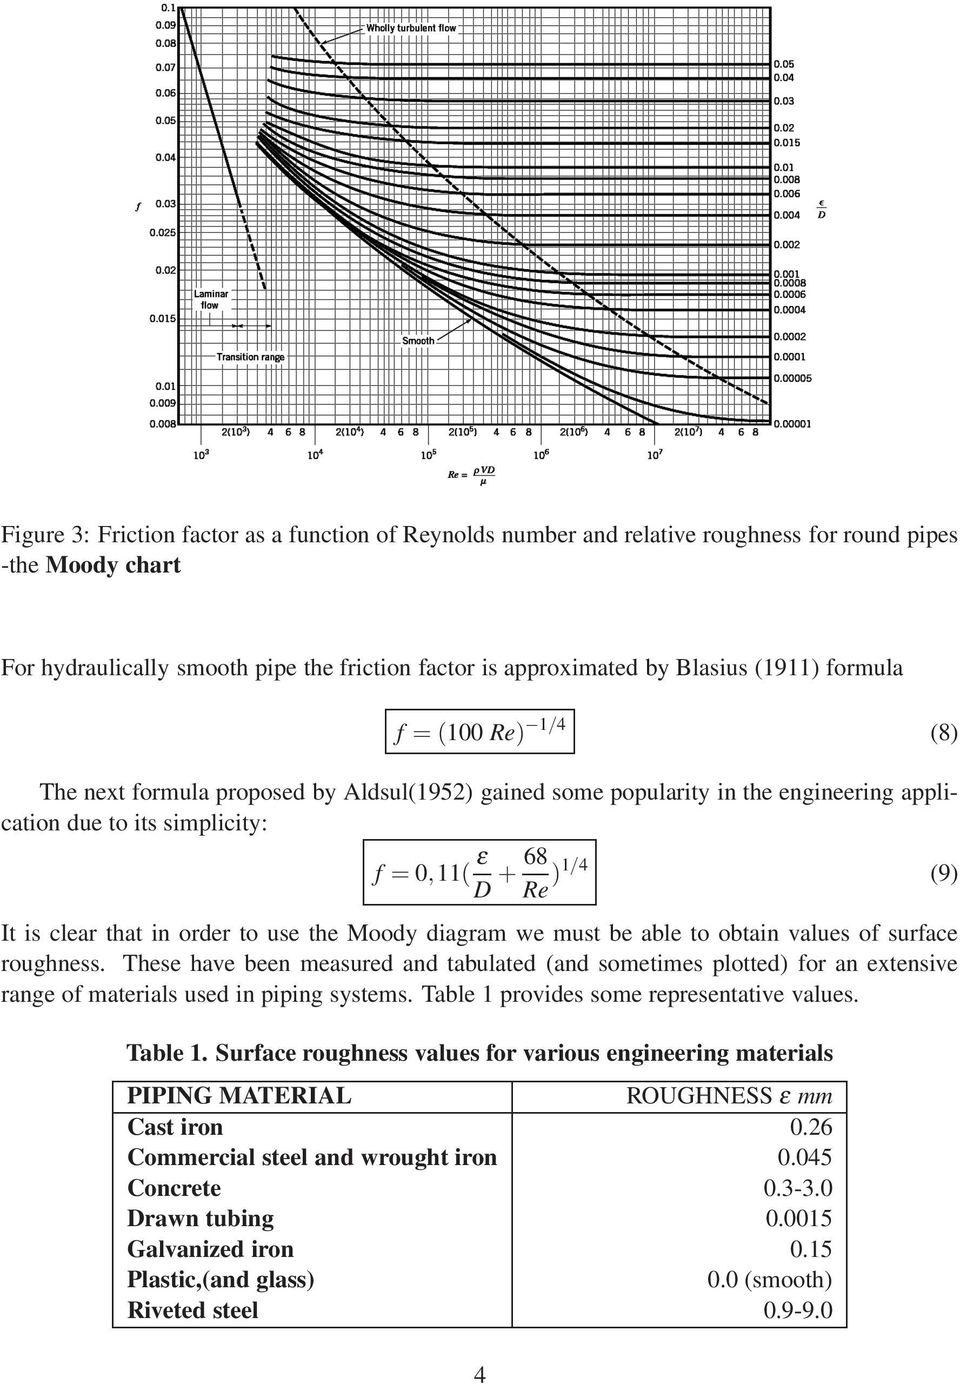 order to use the Moody diagram we must be able to obtain values of surface roughness.